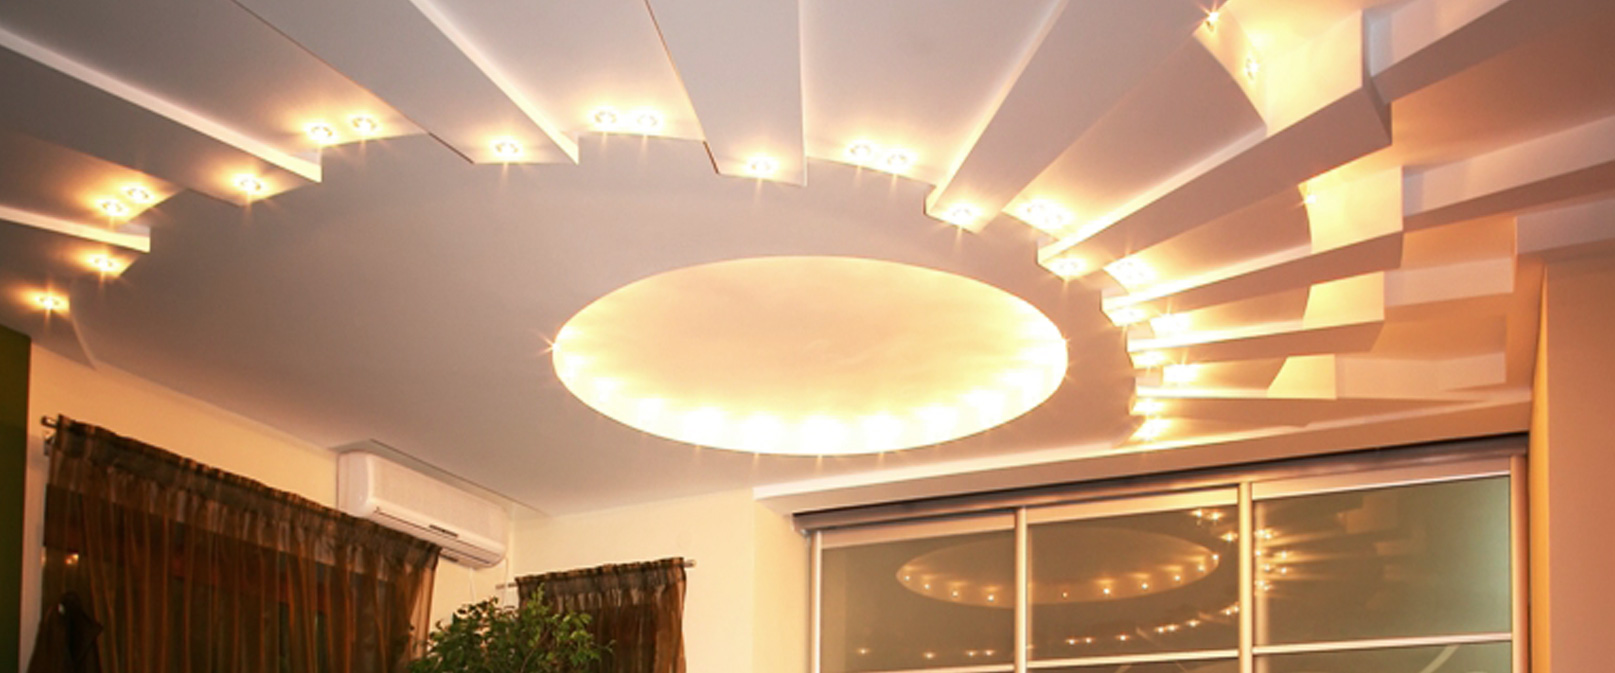 Top 3 Ideas To Light Up Your Ceiling Saint Gobain Gyproc